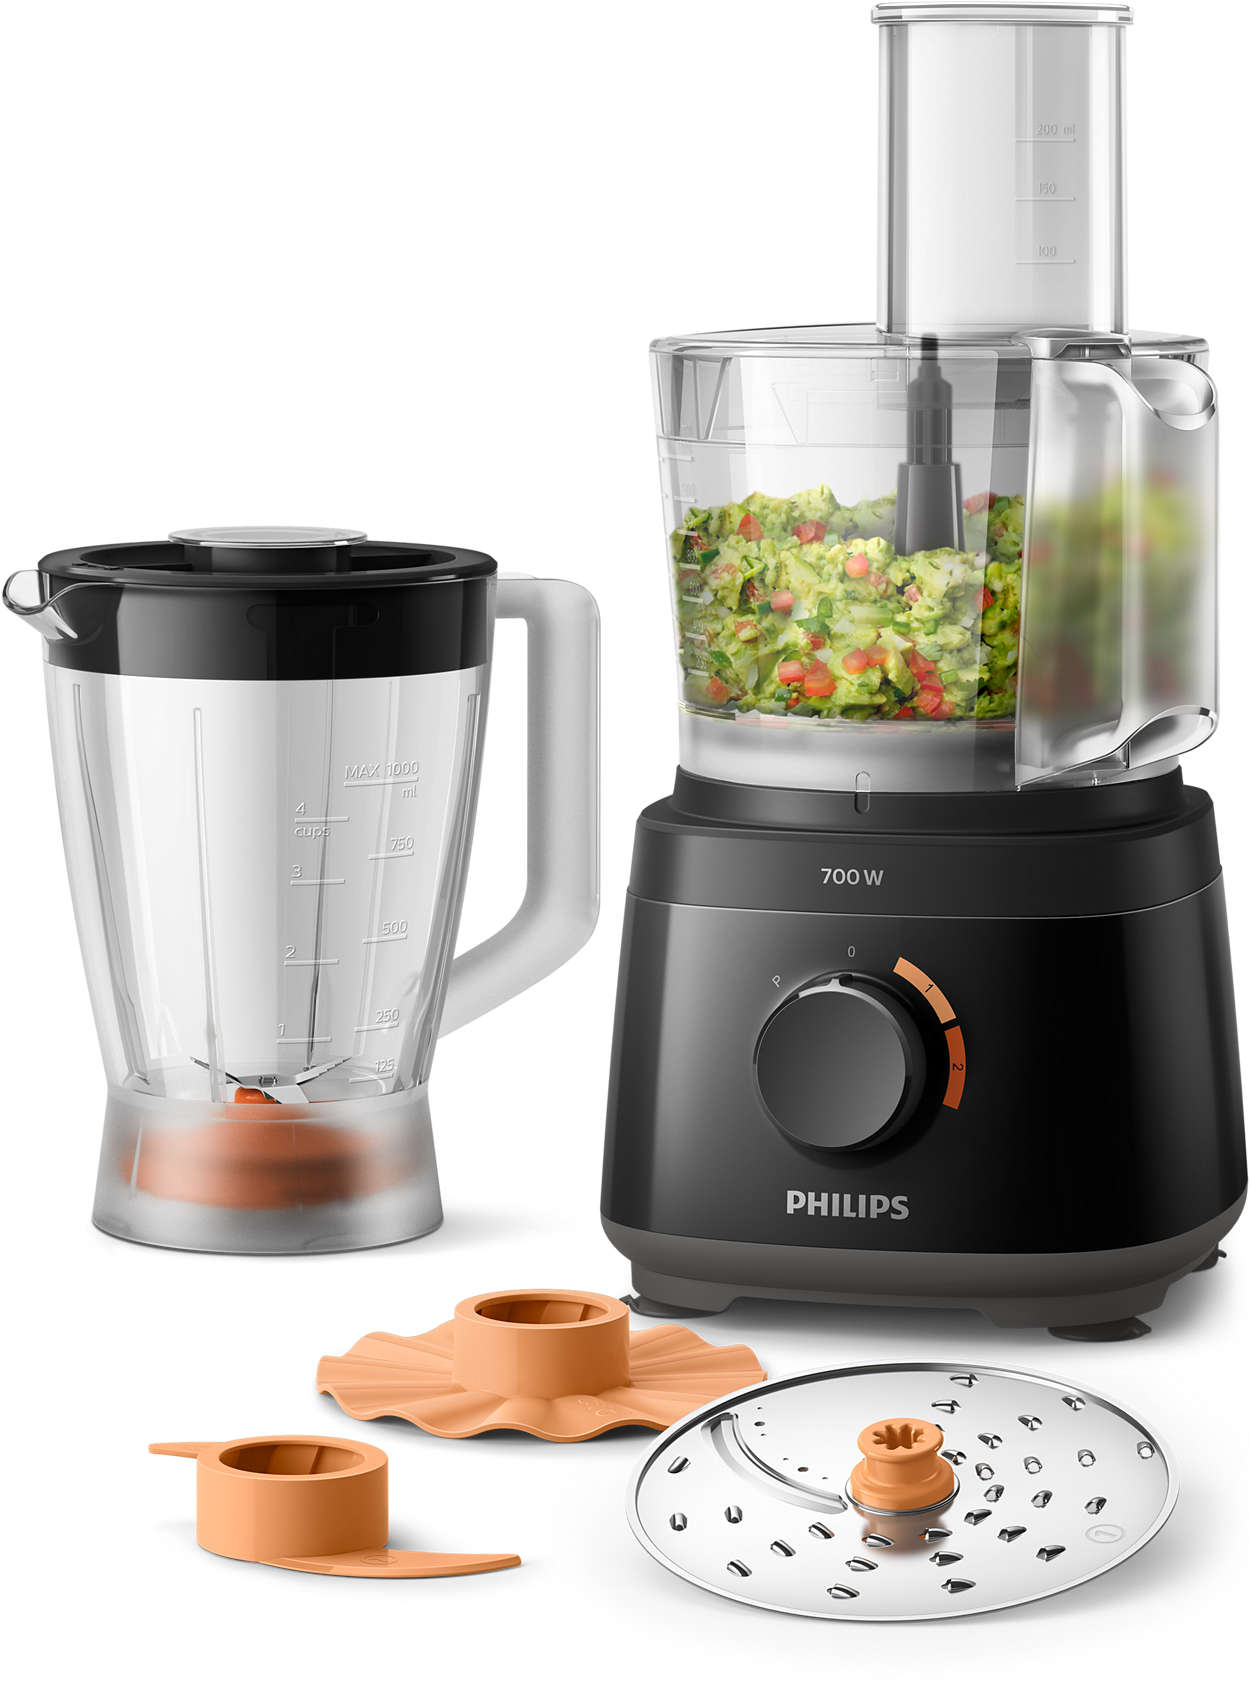 PHILIPS DAILY COLLECTION COMPACT FOOD PROCESSOR BLACK 700W - HR7320/00